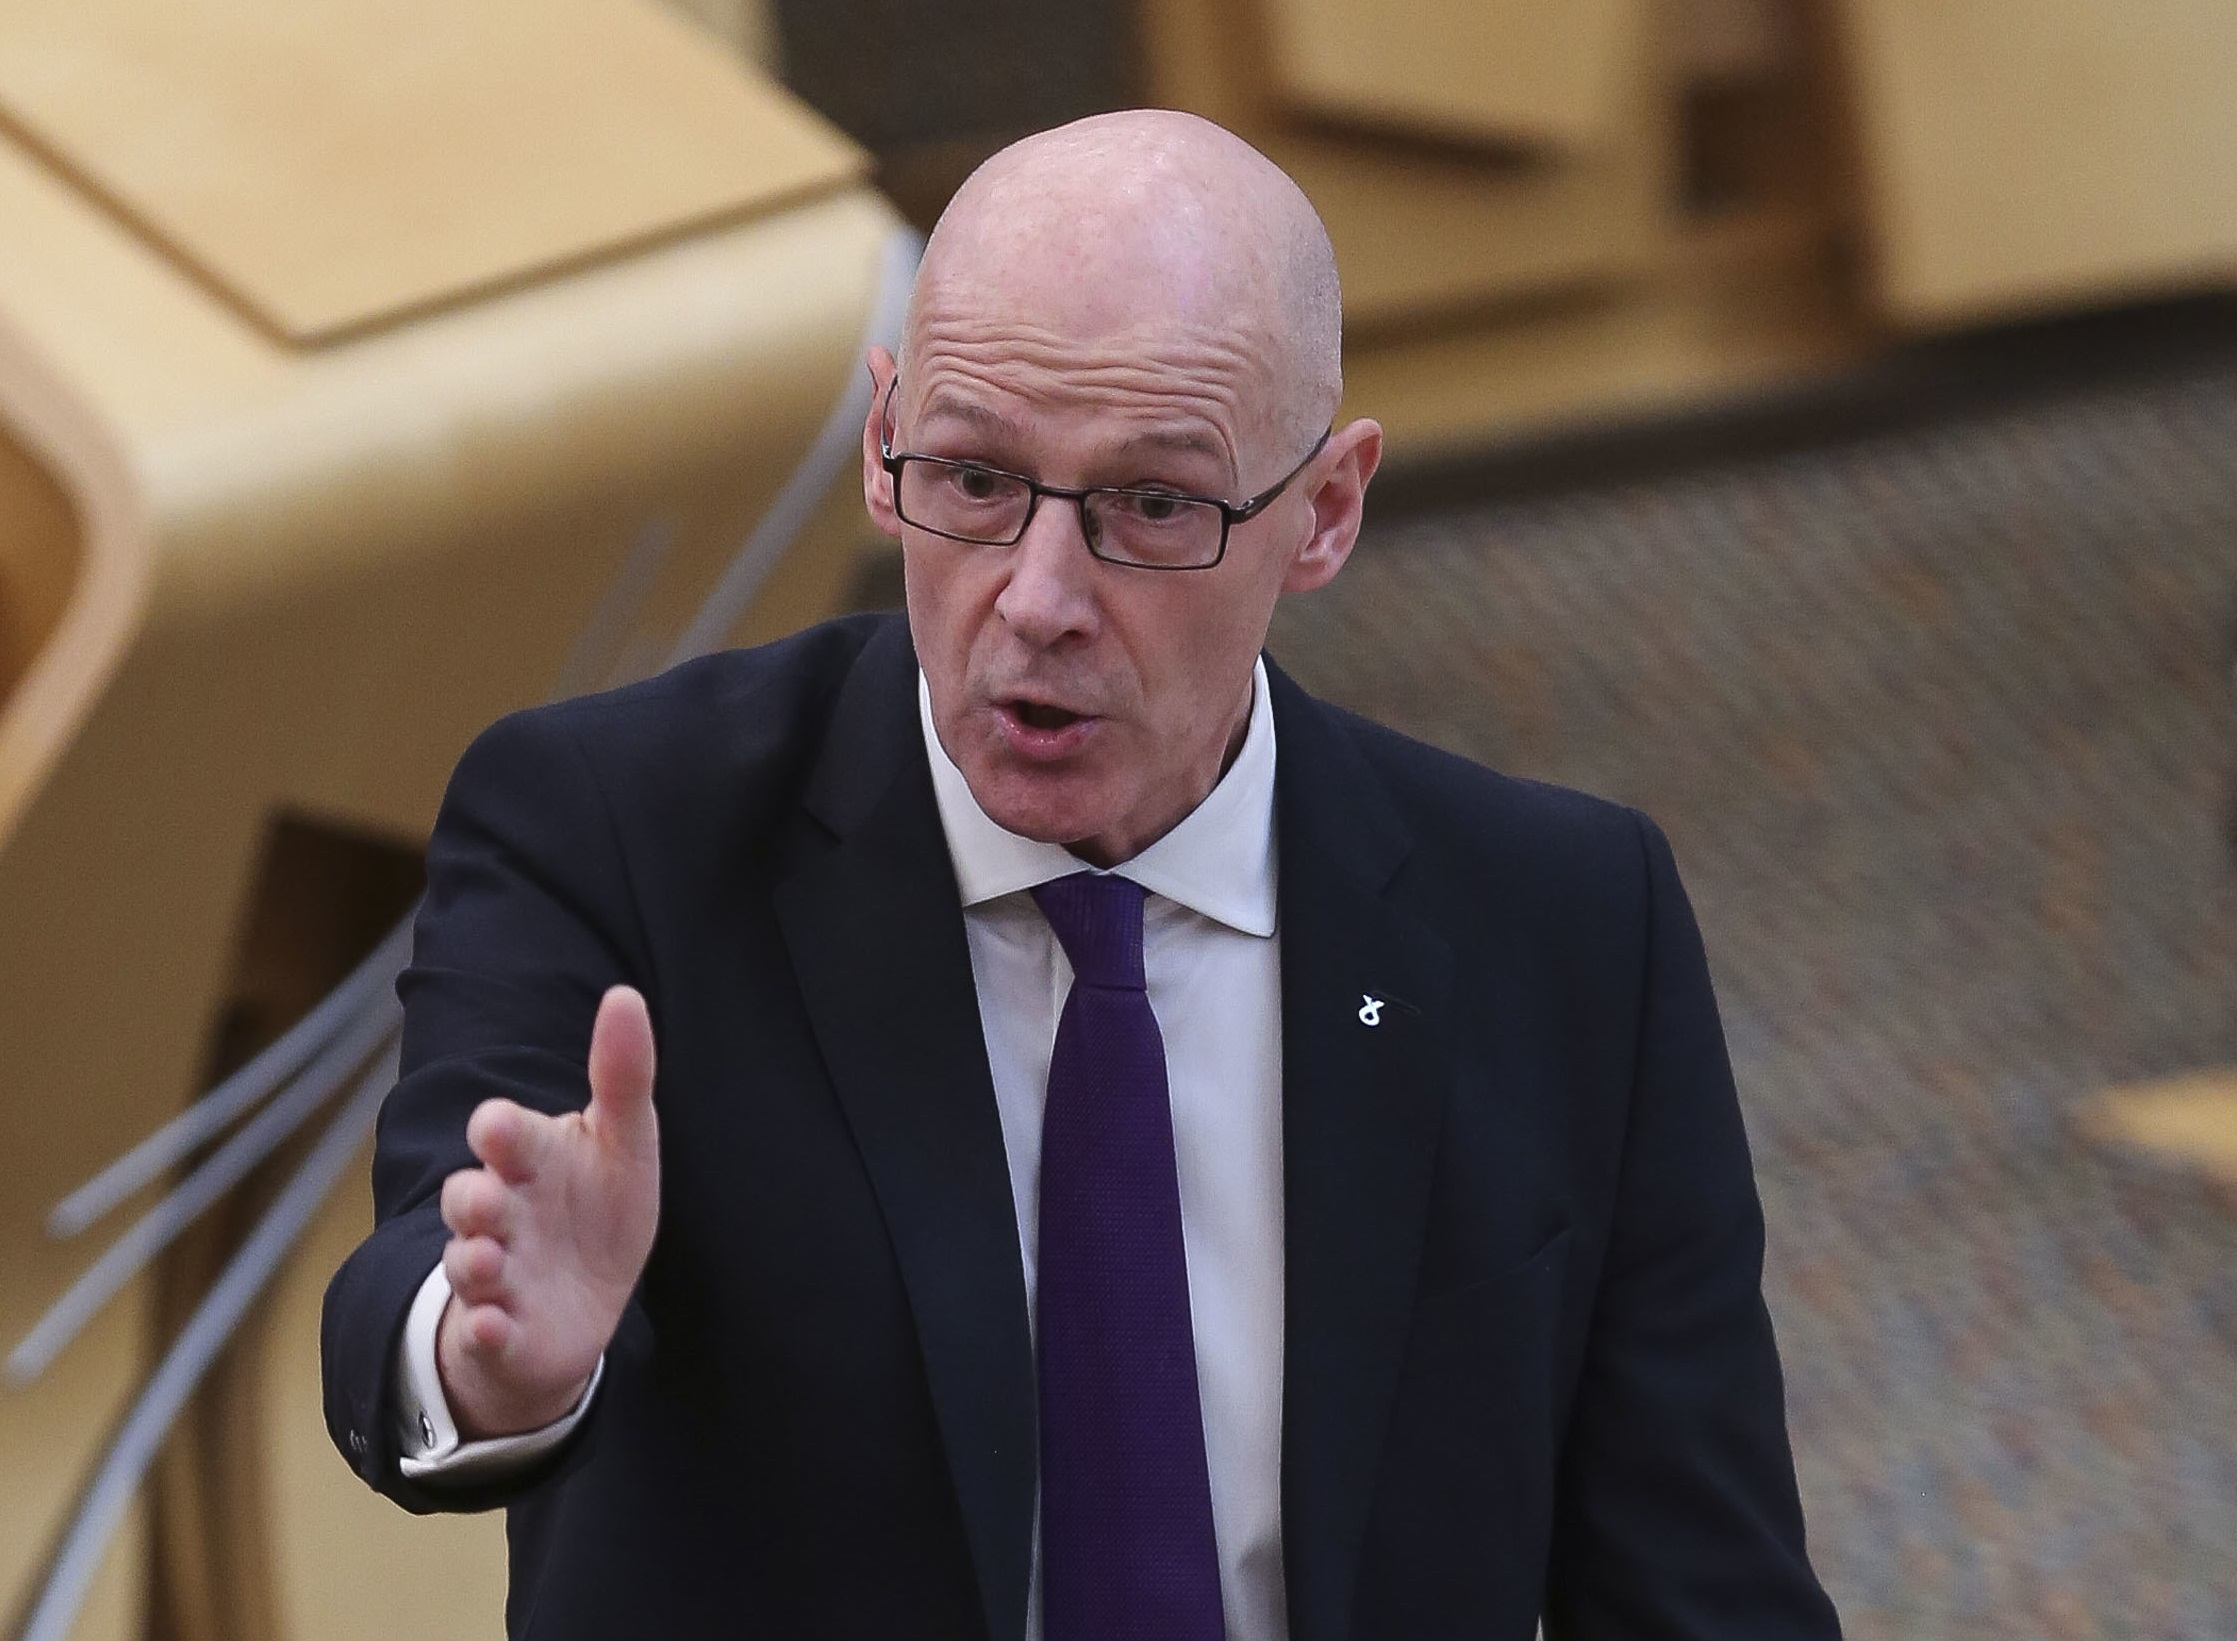 Why should we respect a court ruling that disrespects Scottish democracy?